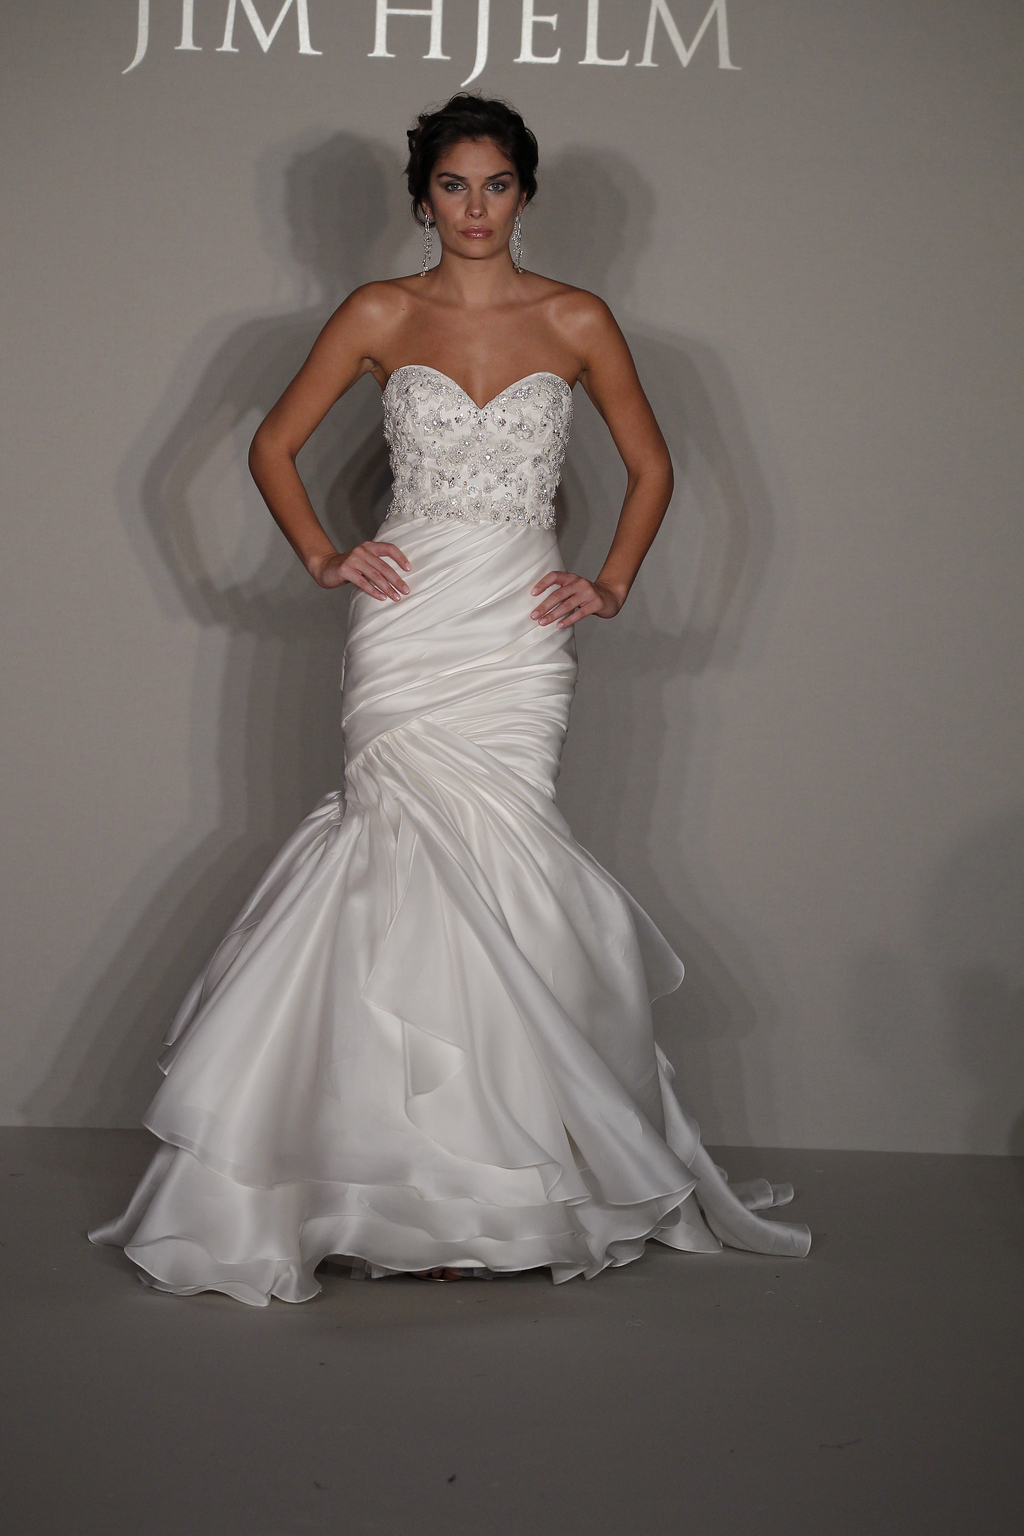 Jim-hjelm-wedding-dress-spring-2012-bridal-gowns-8200.full